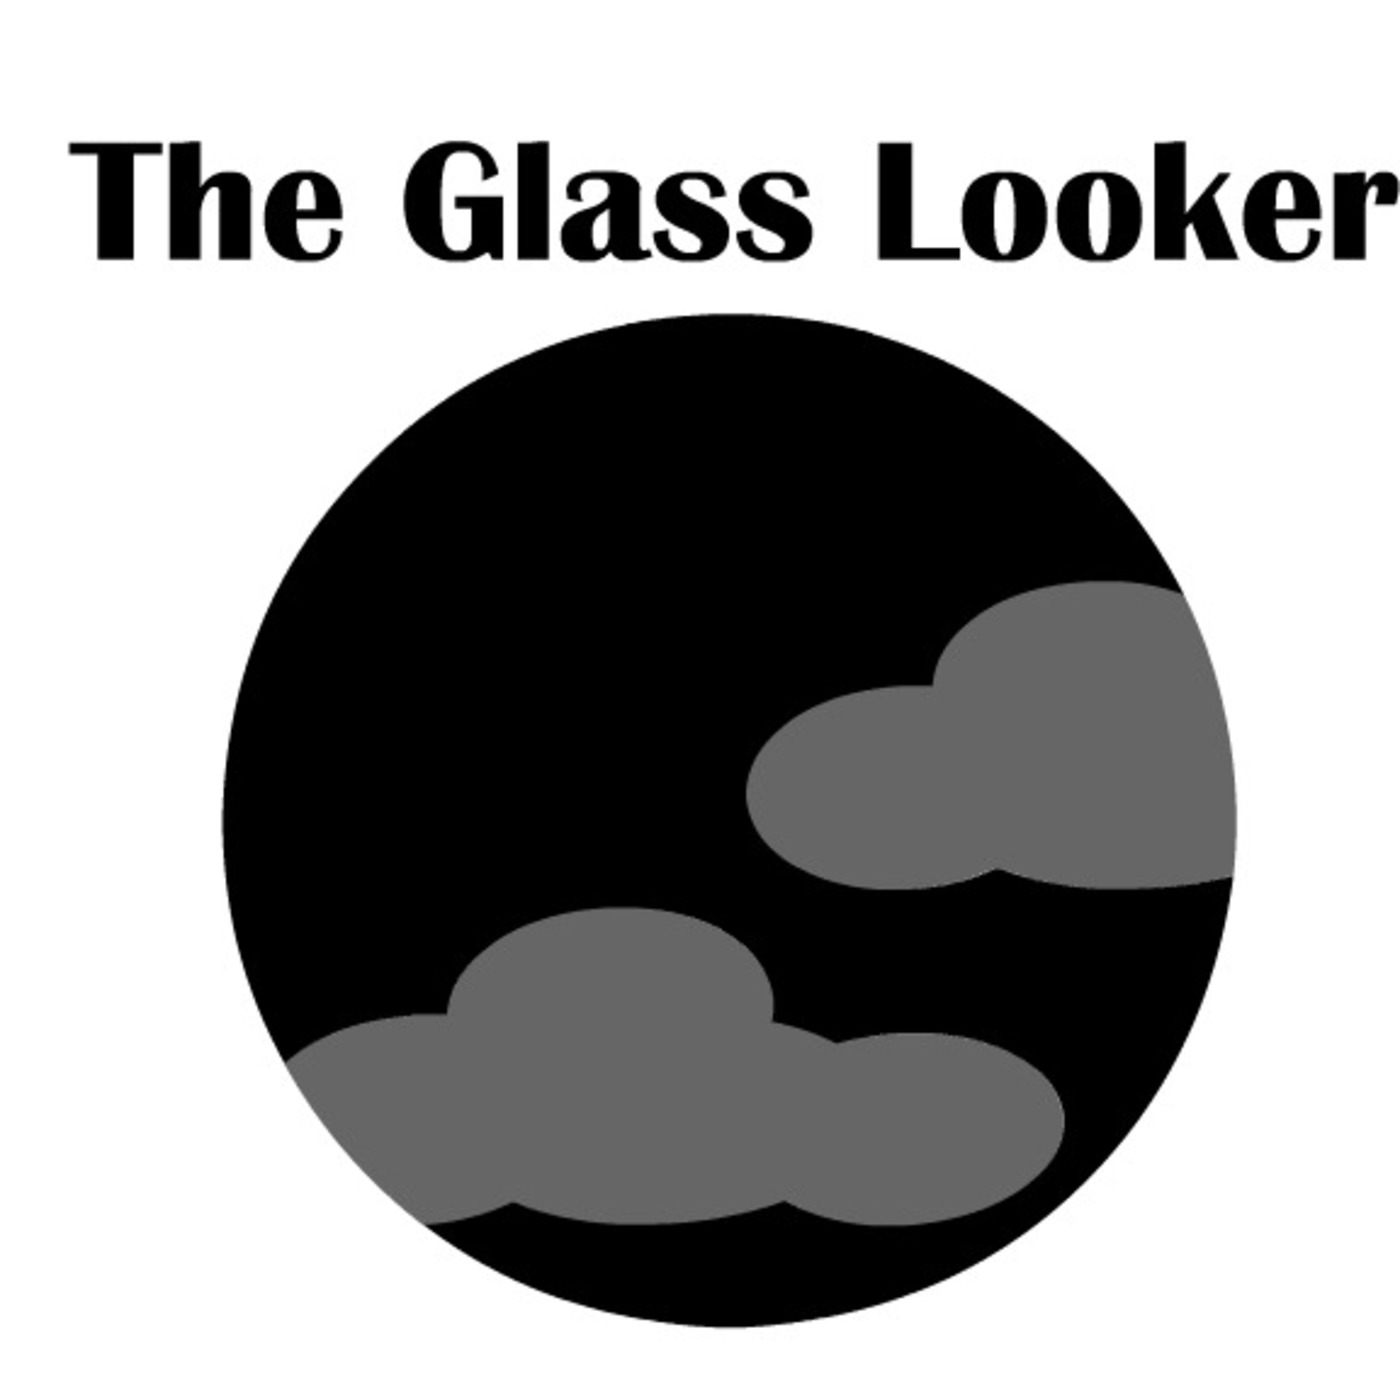 The Glass Looker